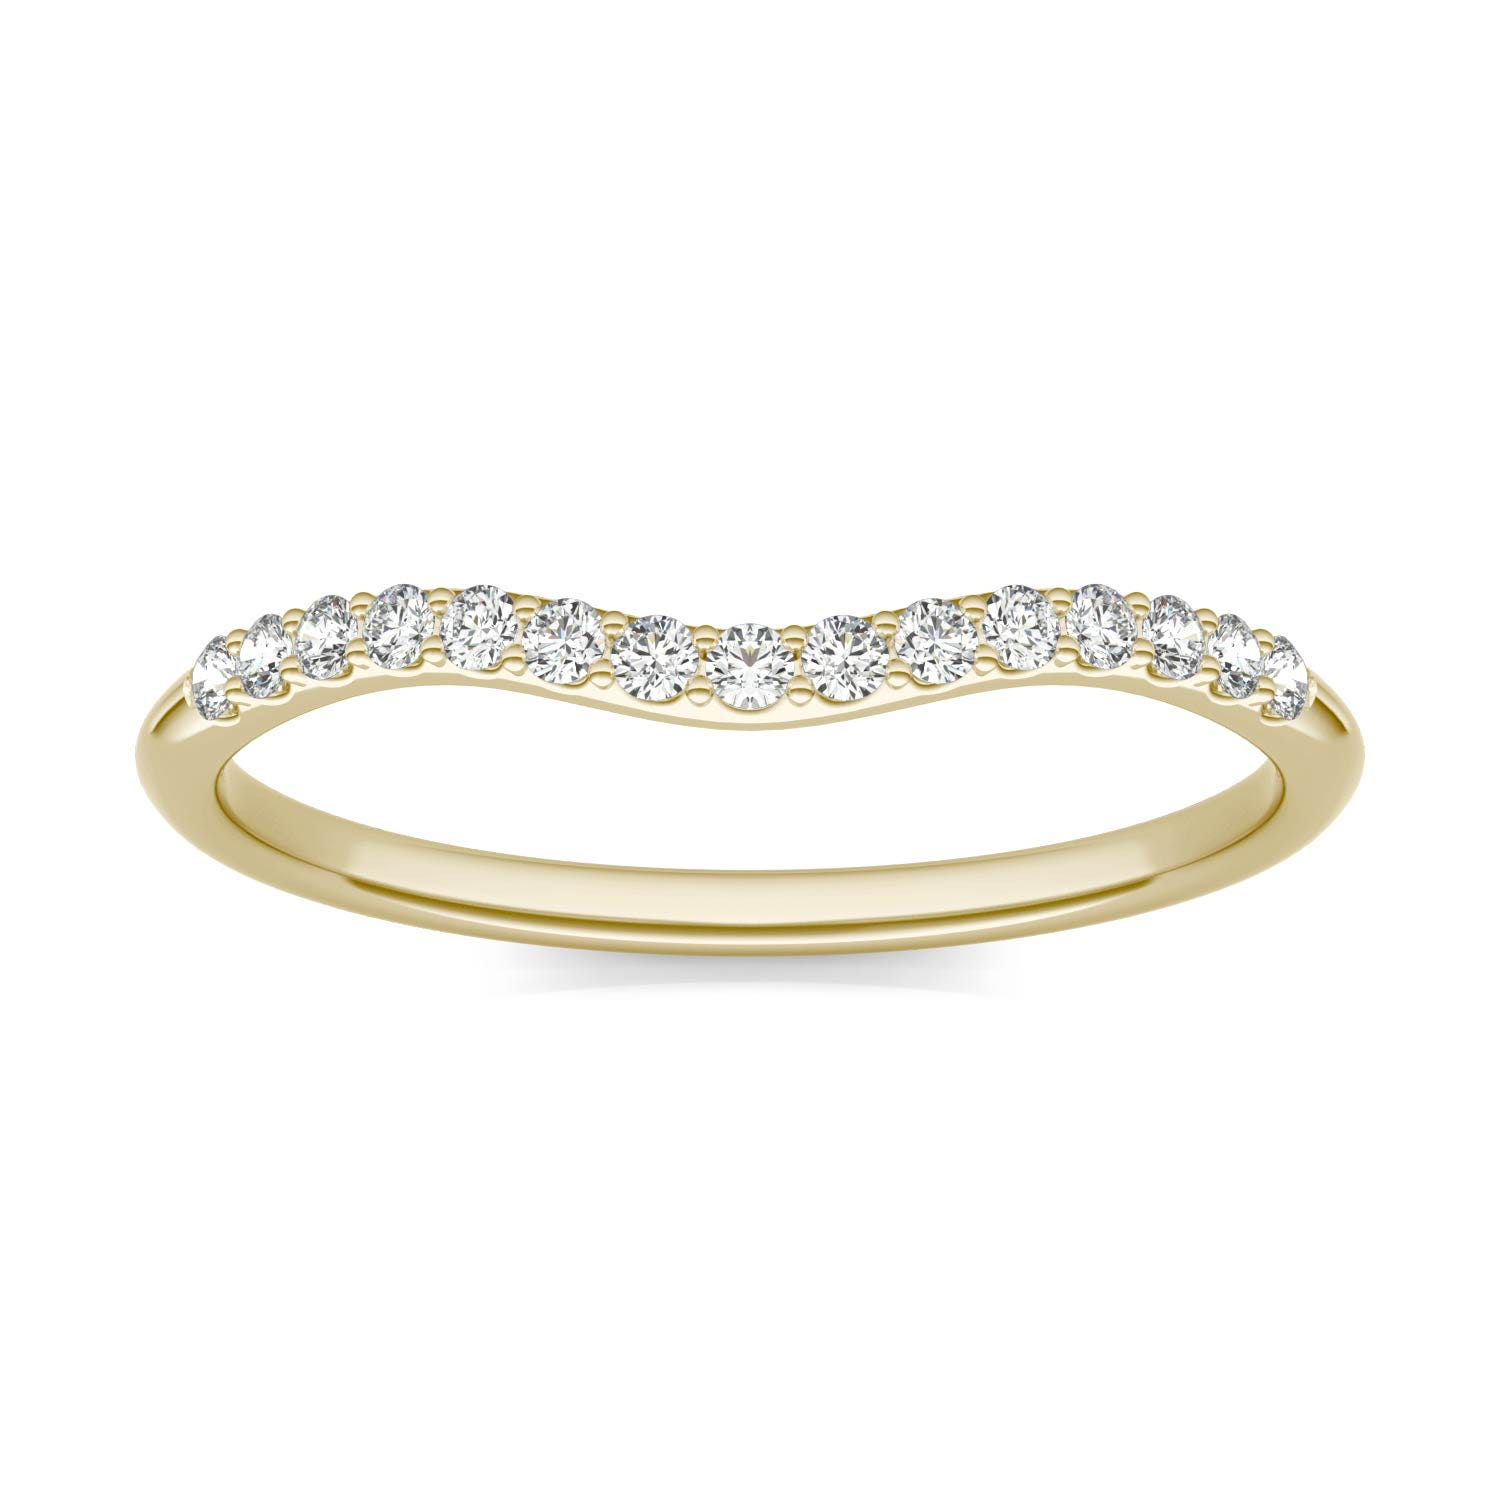 Signature 8mm Round Halo Matching Band Wedding Ring in 18K Yellow Gold, 1/6 CTW Charles & Colvard